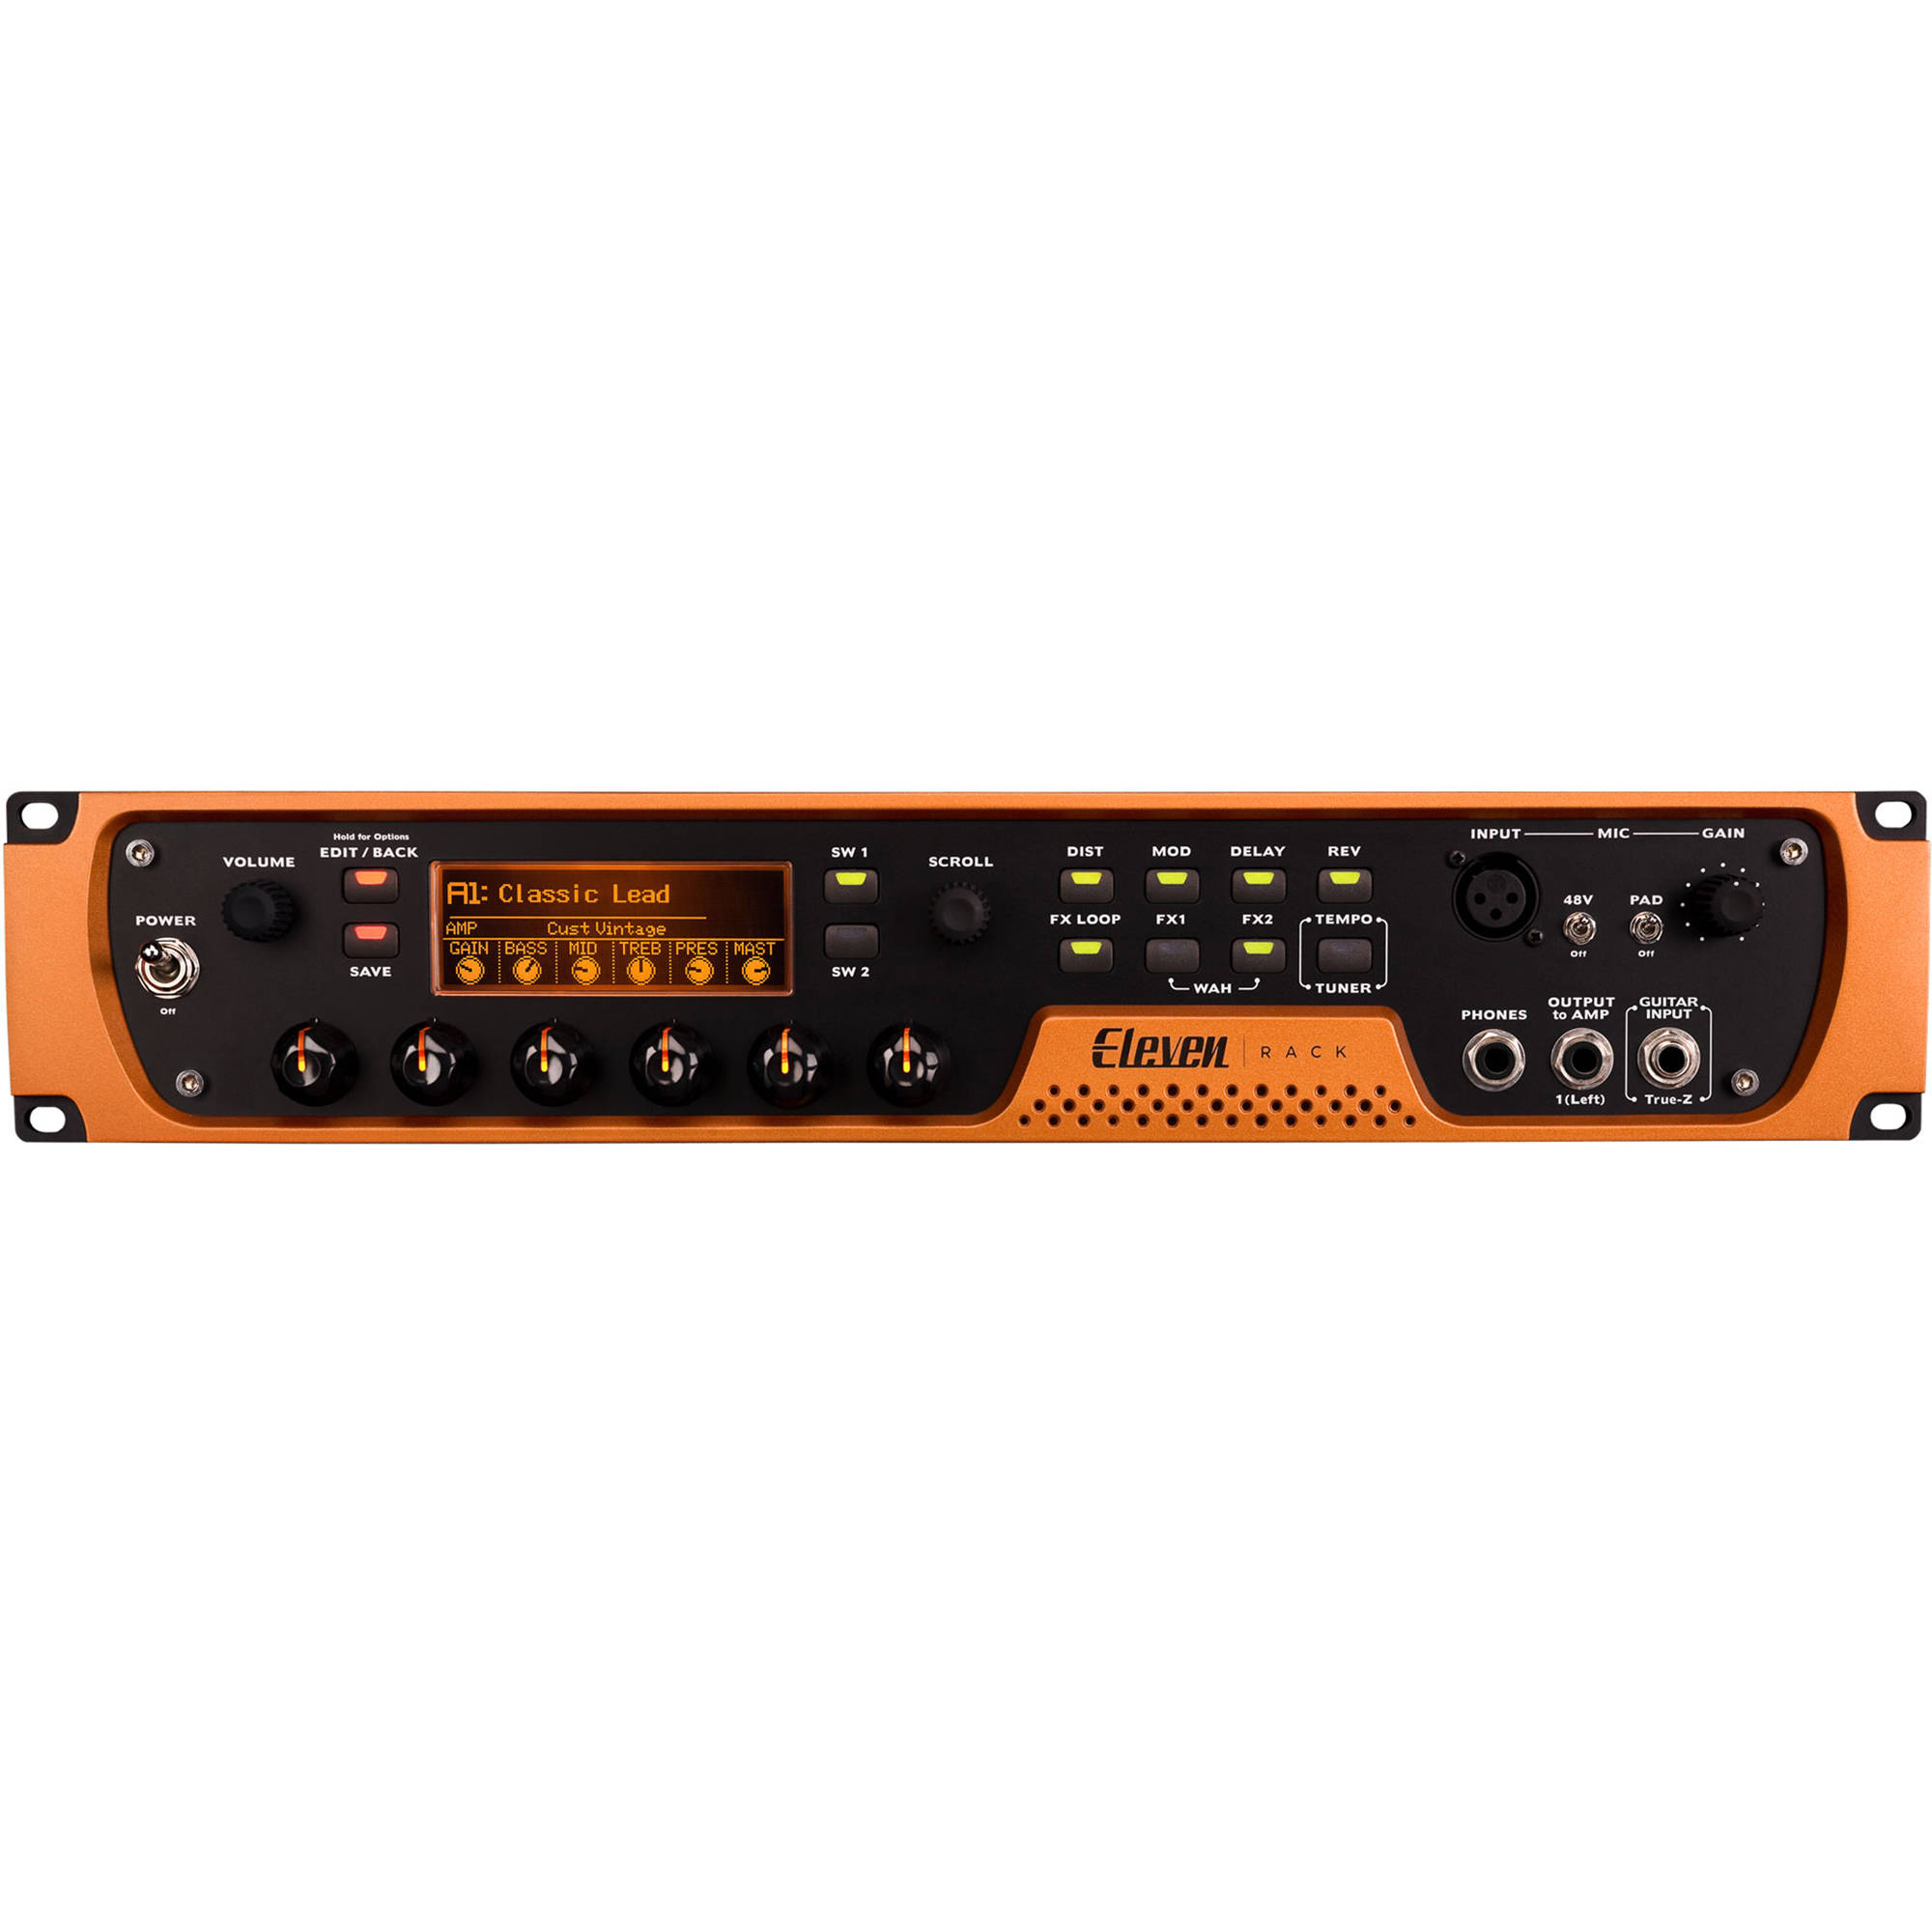 Avid Pro Tools Eleven Rack Recording And Guitar Amp Emulation System With 1